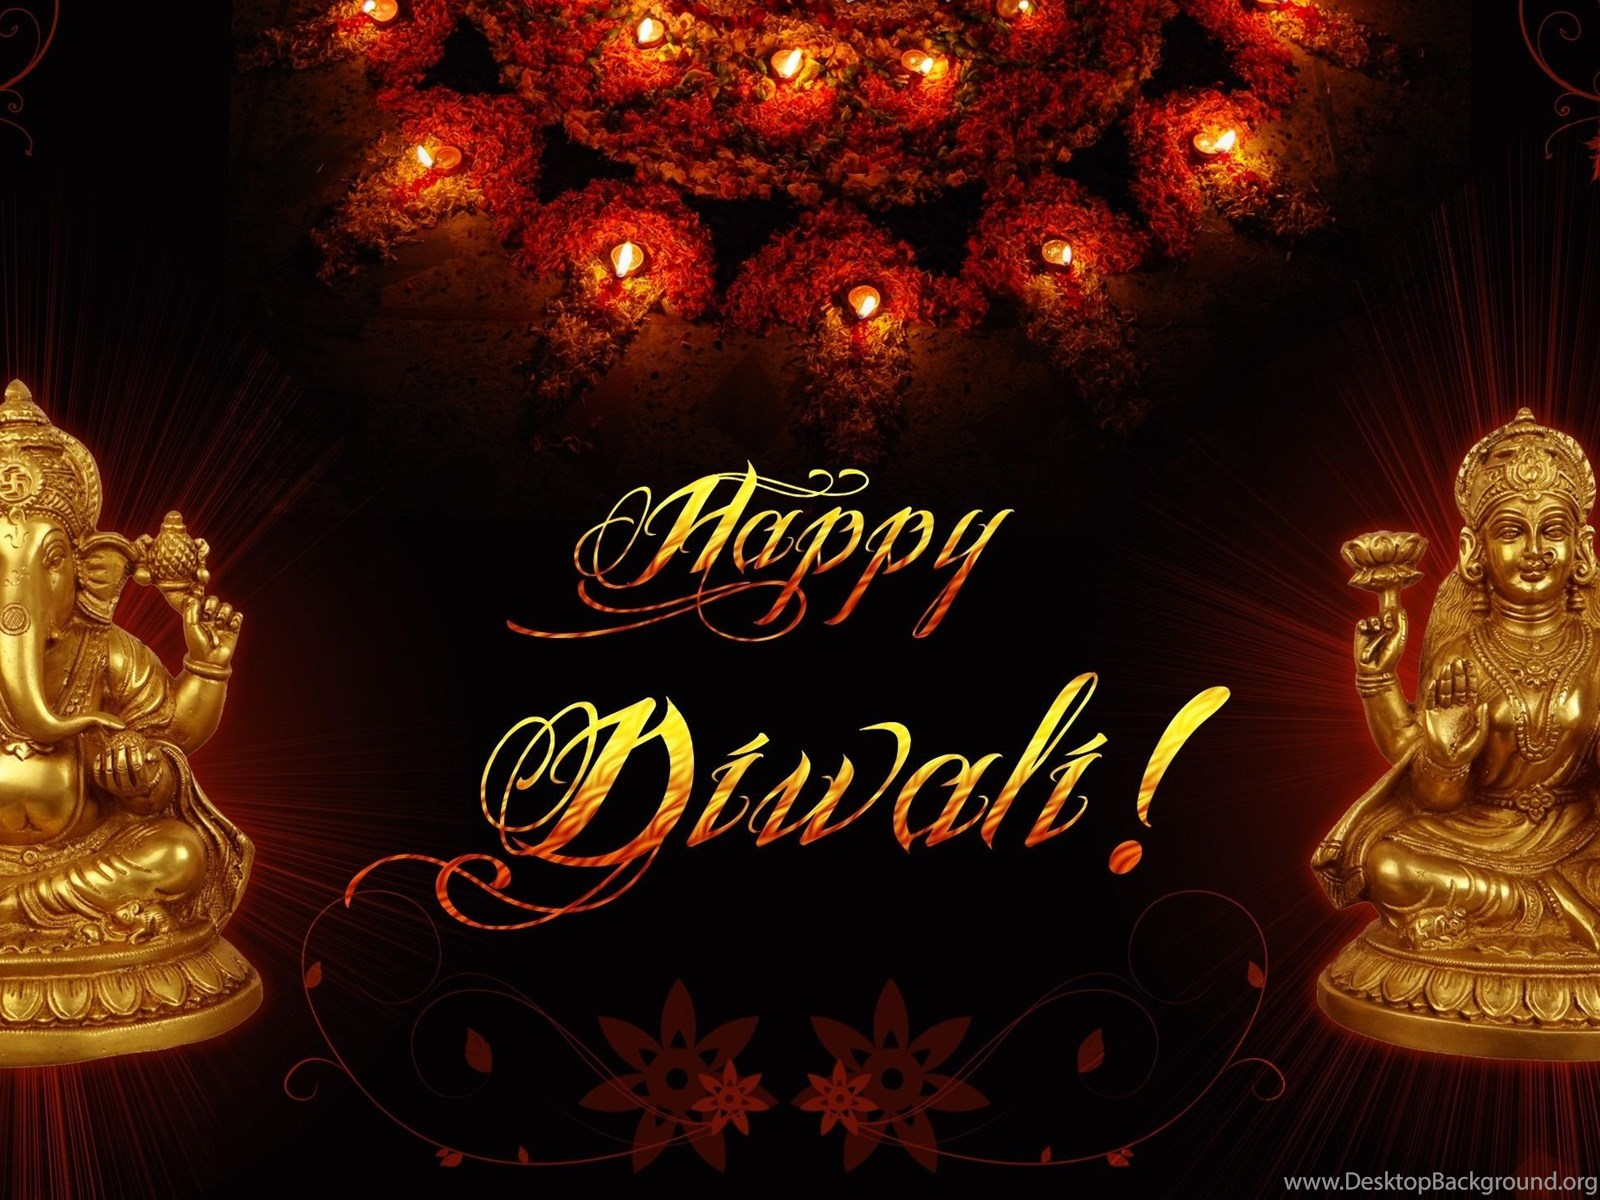 Happy Diwali Wallpapers And Images Free Download For Your Desktop